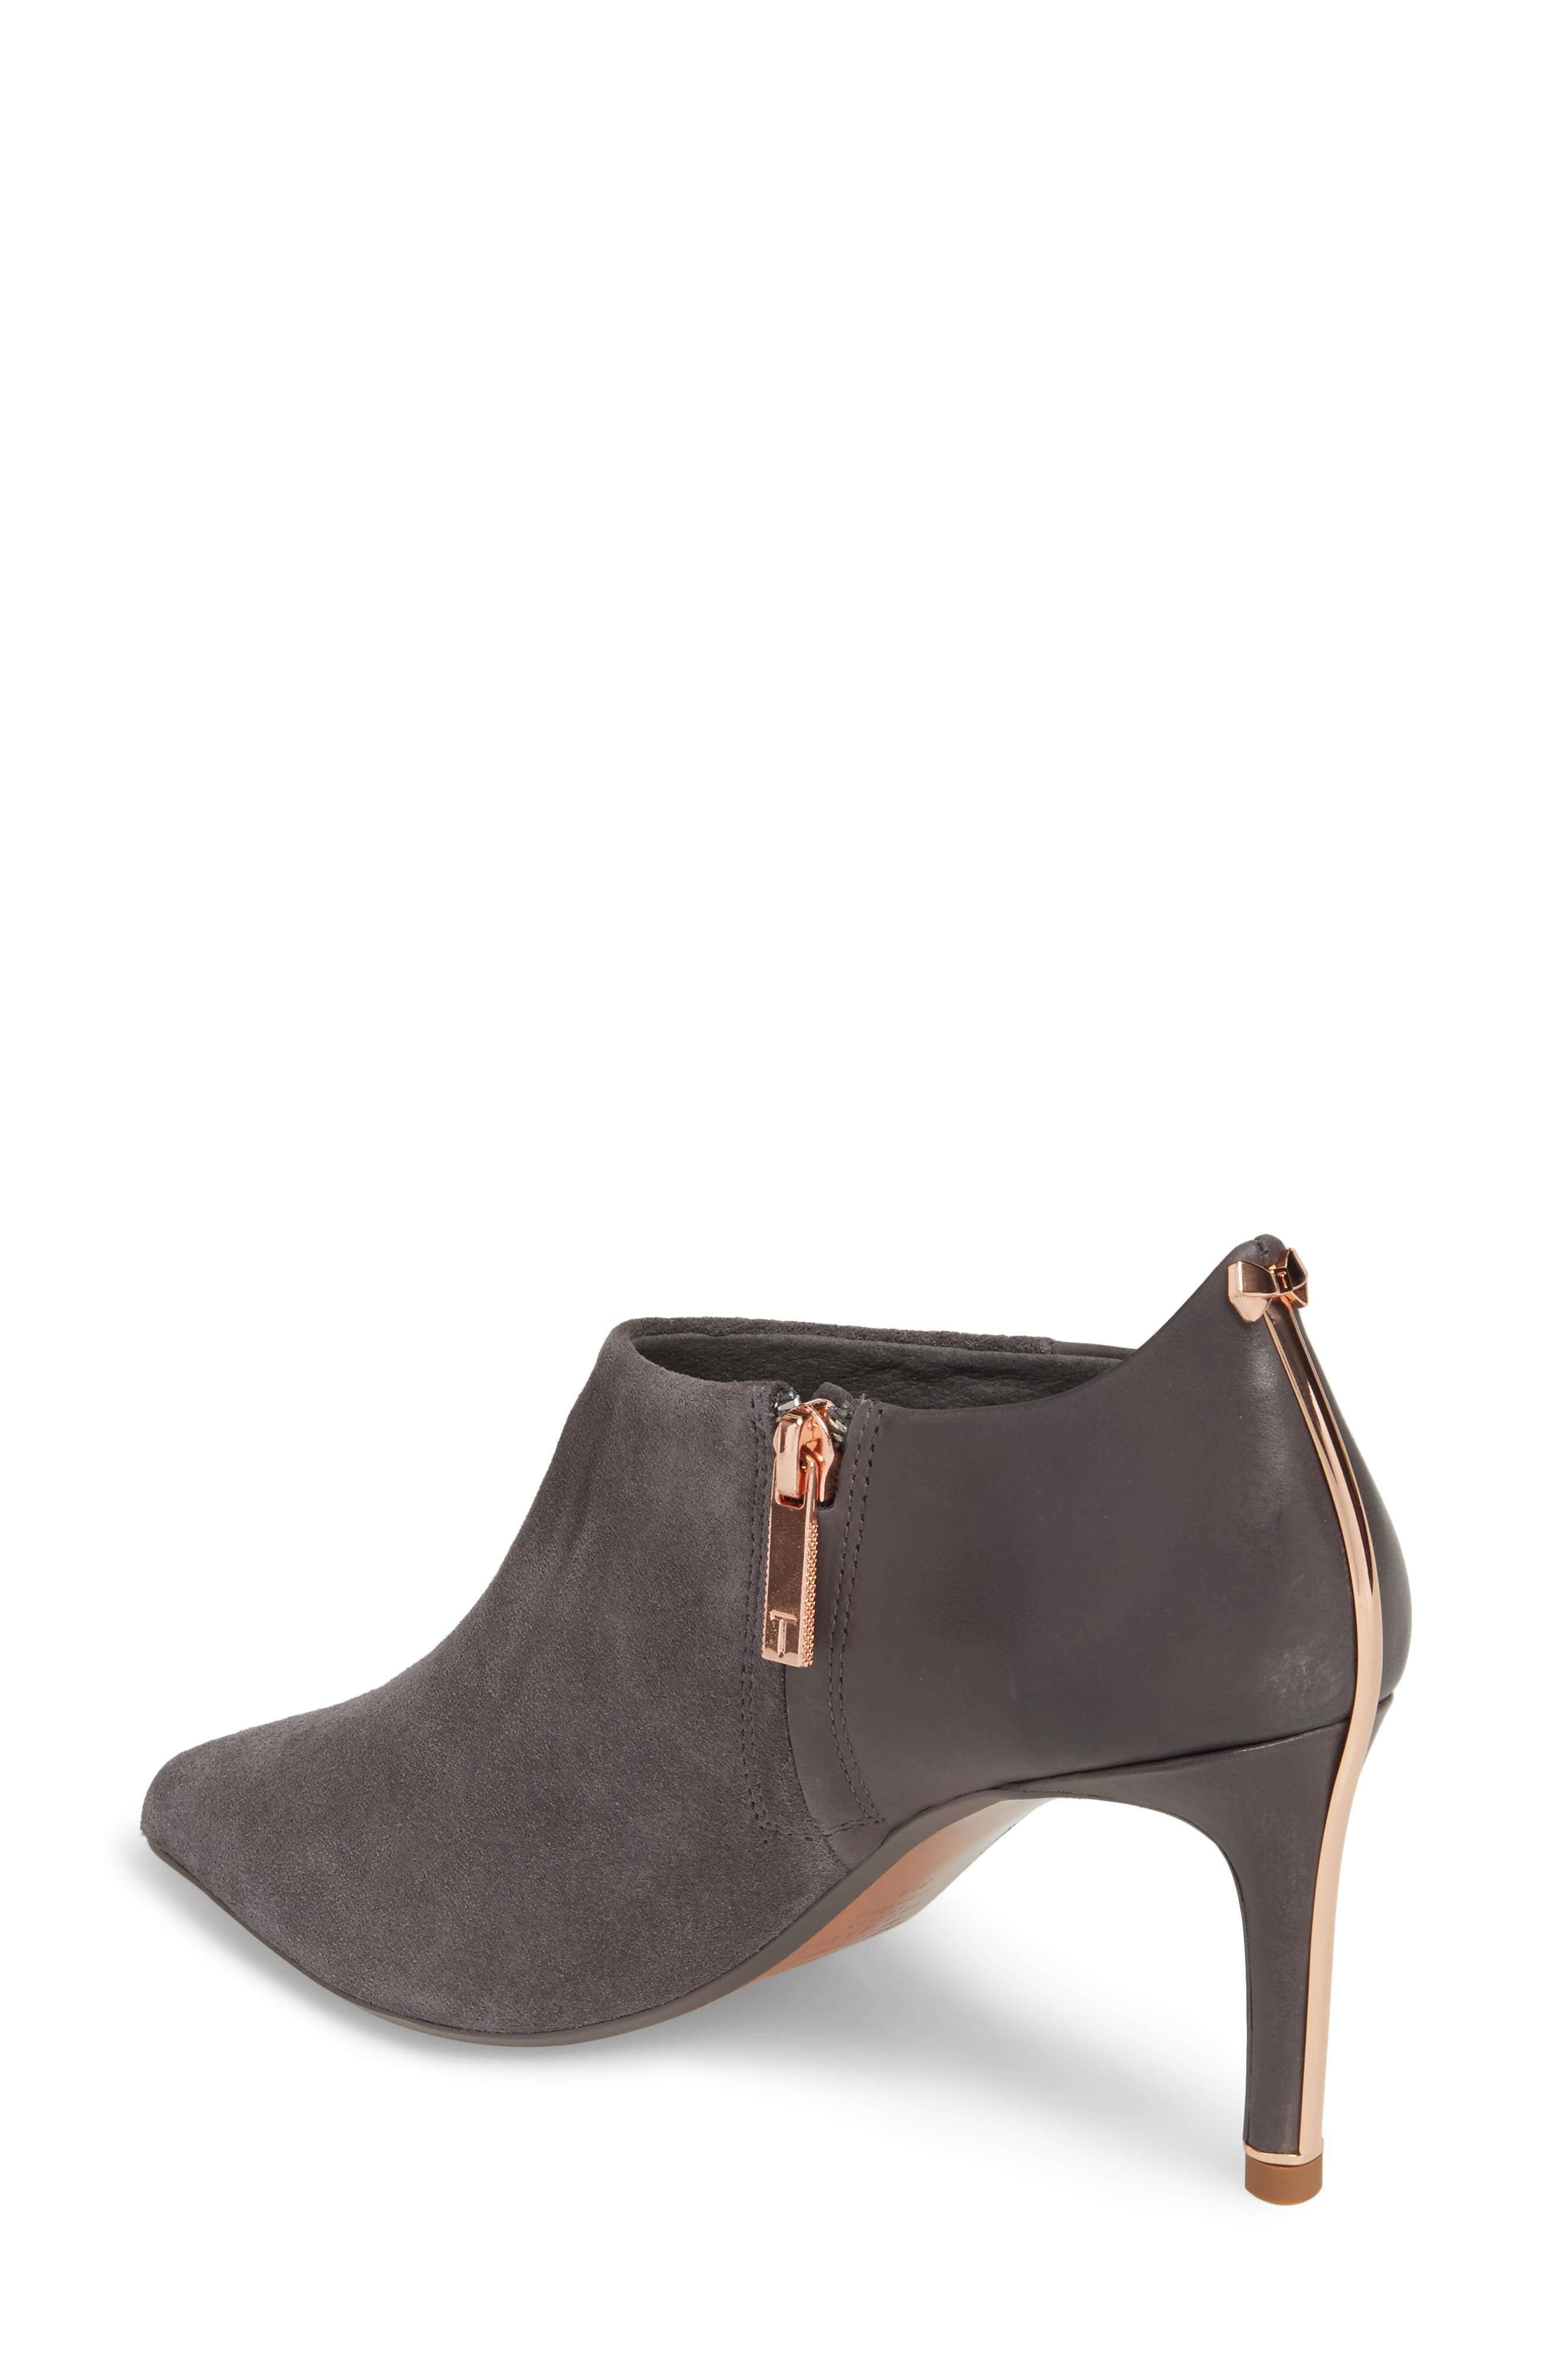 Akasher Bootie,                             Alternate thumbnail 2, color,                             Grey Suede